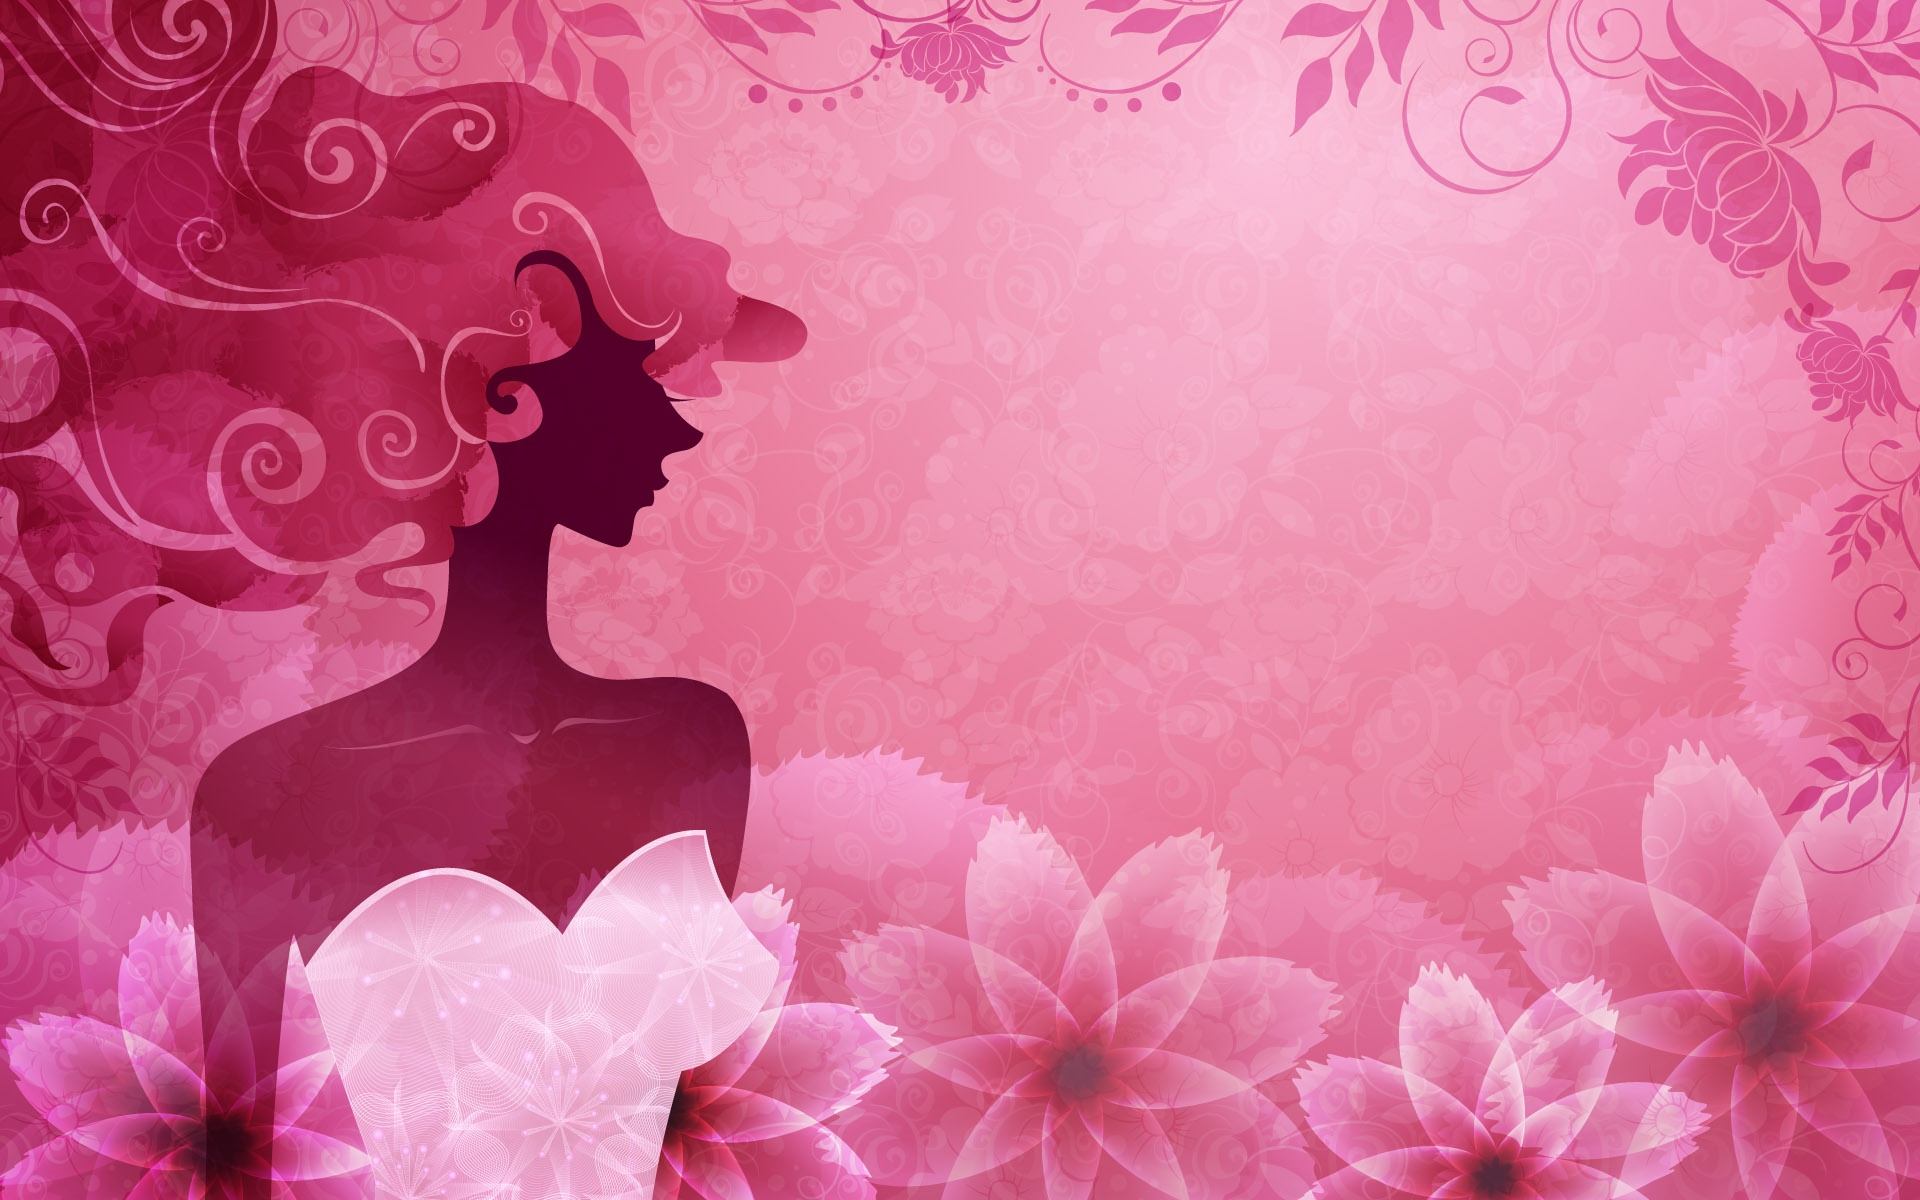 Pink Color Background   Wallpaper High Definition High Quality 1920x1200